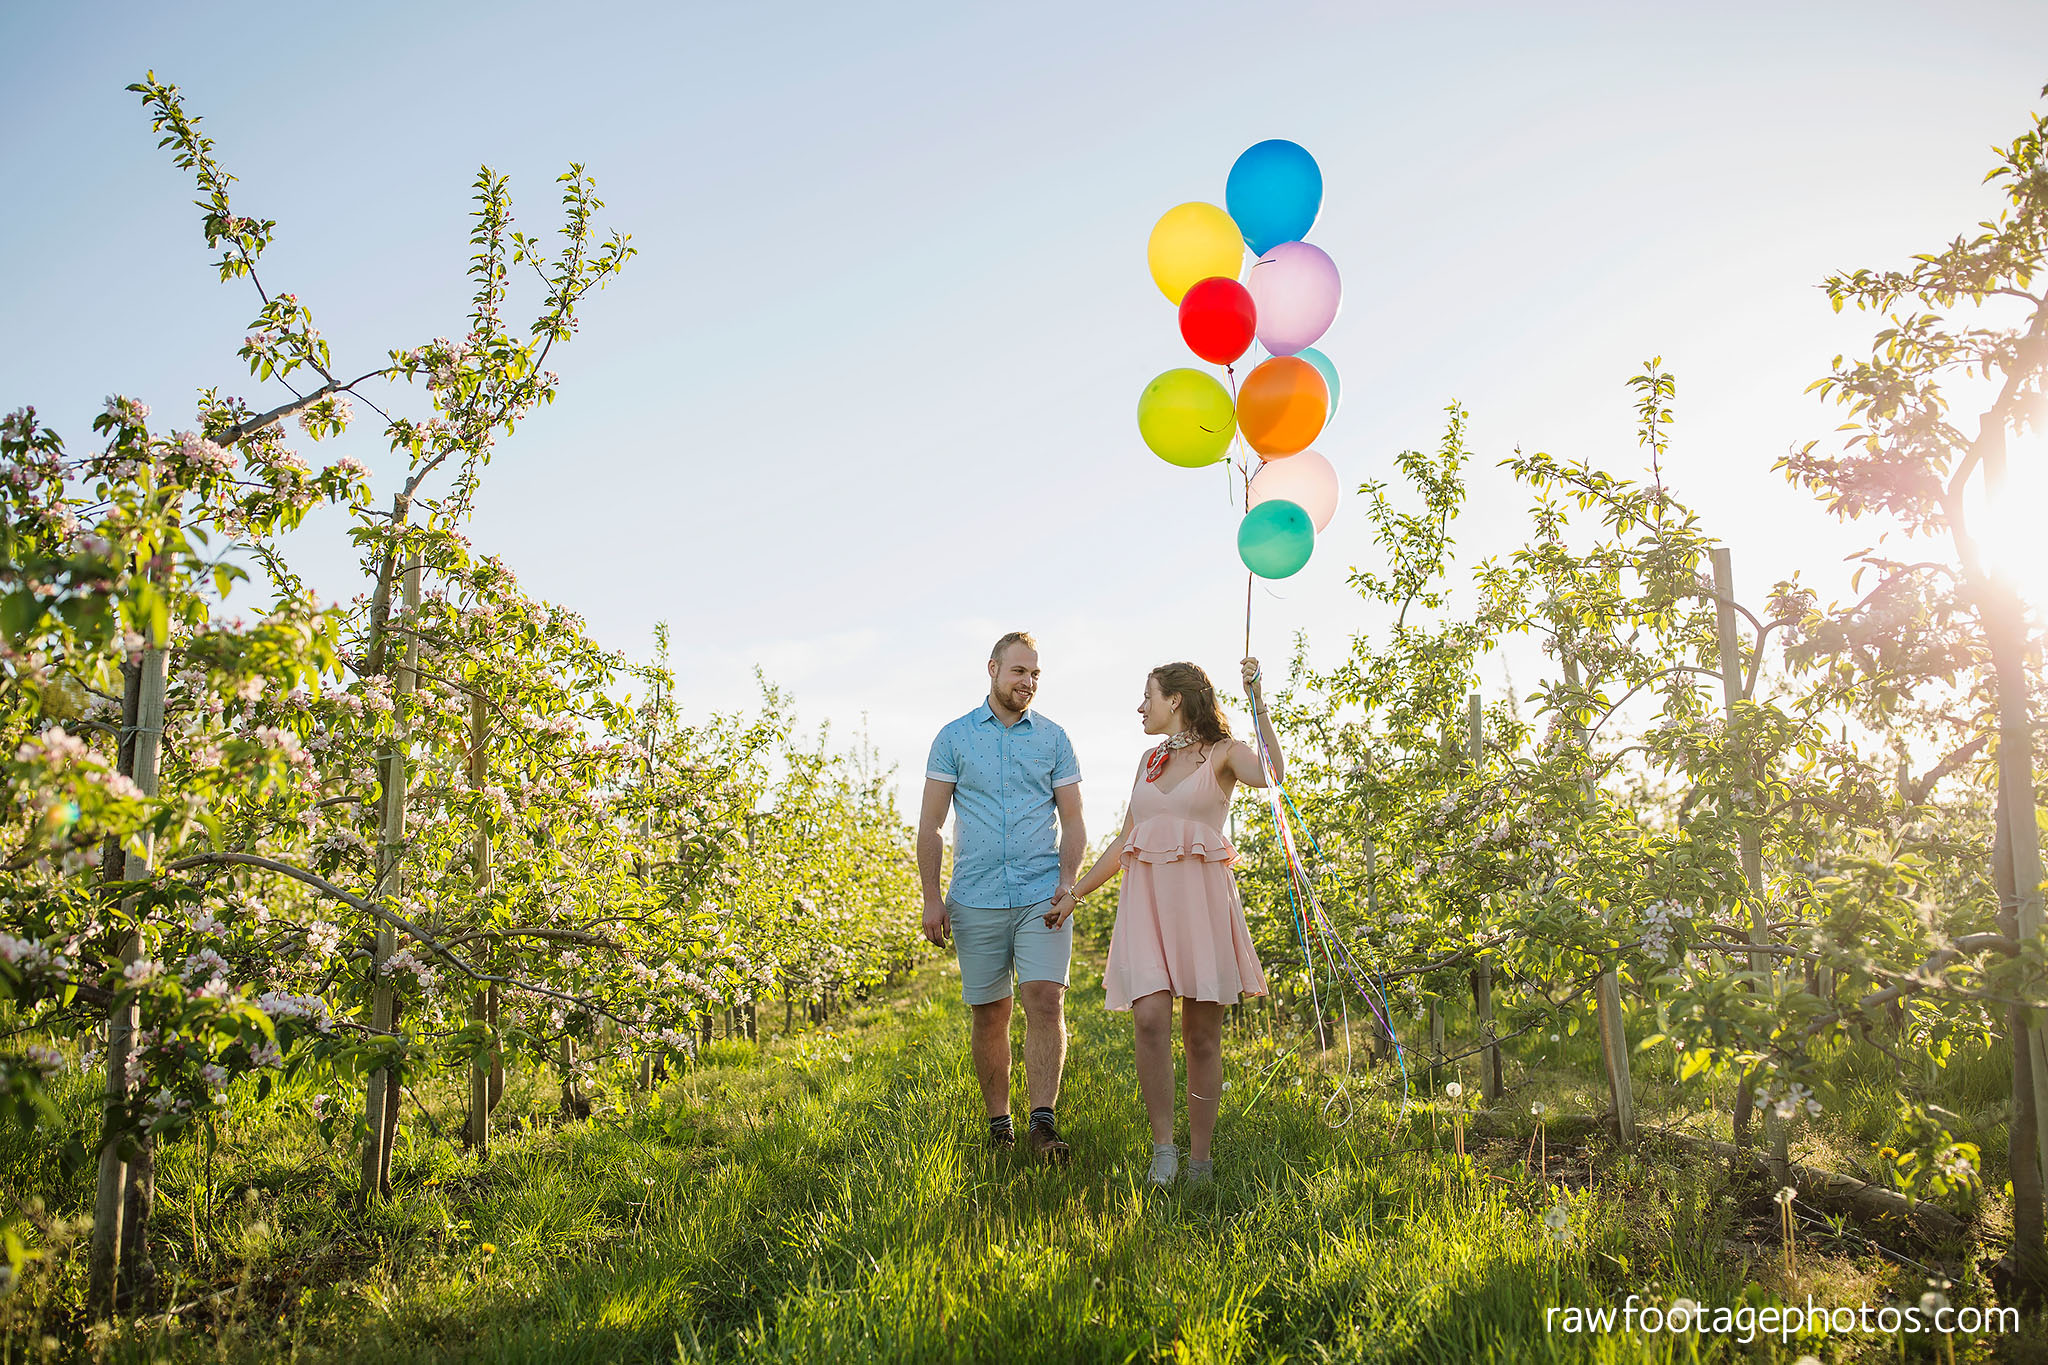 london_ontario_wedding_photographer-raw_footage_photography-engagement_session-airport_session-airplane-balloons-apple_orchard-spring_blooms-apple_blossoms014.jpg